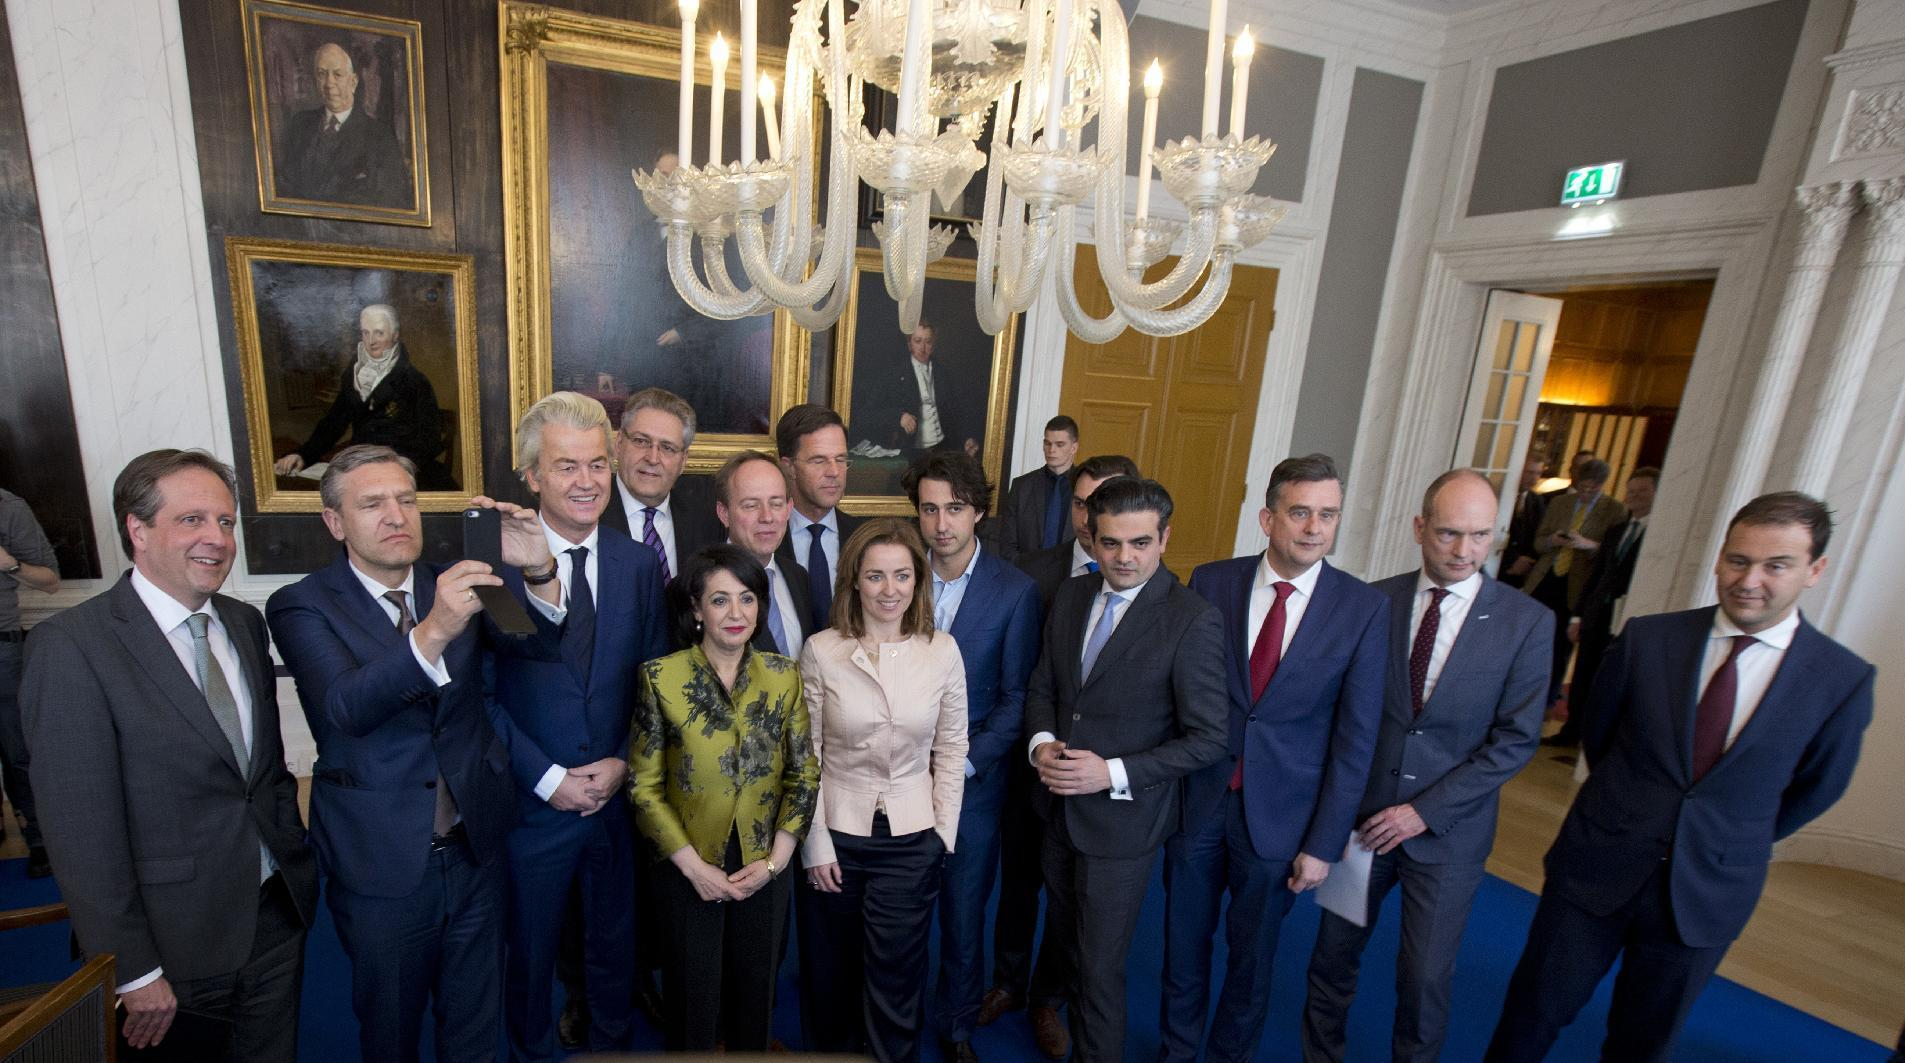 Political party leaders pose for a group picture with Khadija Arib, center left, the chairwoman of parliament, prior to discussing first steps in forming a new dutch coalition government in The Hague, Netherlands, Thursday, March 16, 2017. Dutch political parties were preparing Thursday to start what will likely be a long process of coalition talks after Prime Minister Mark Rutte's right-wing VVD easily won national elections, defying polls that suggested a close race with anti-Islam populist Geert Wilders. (AP Photo/Peter Dejong)